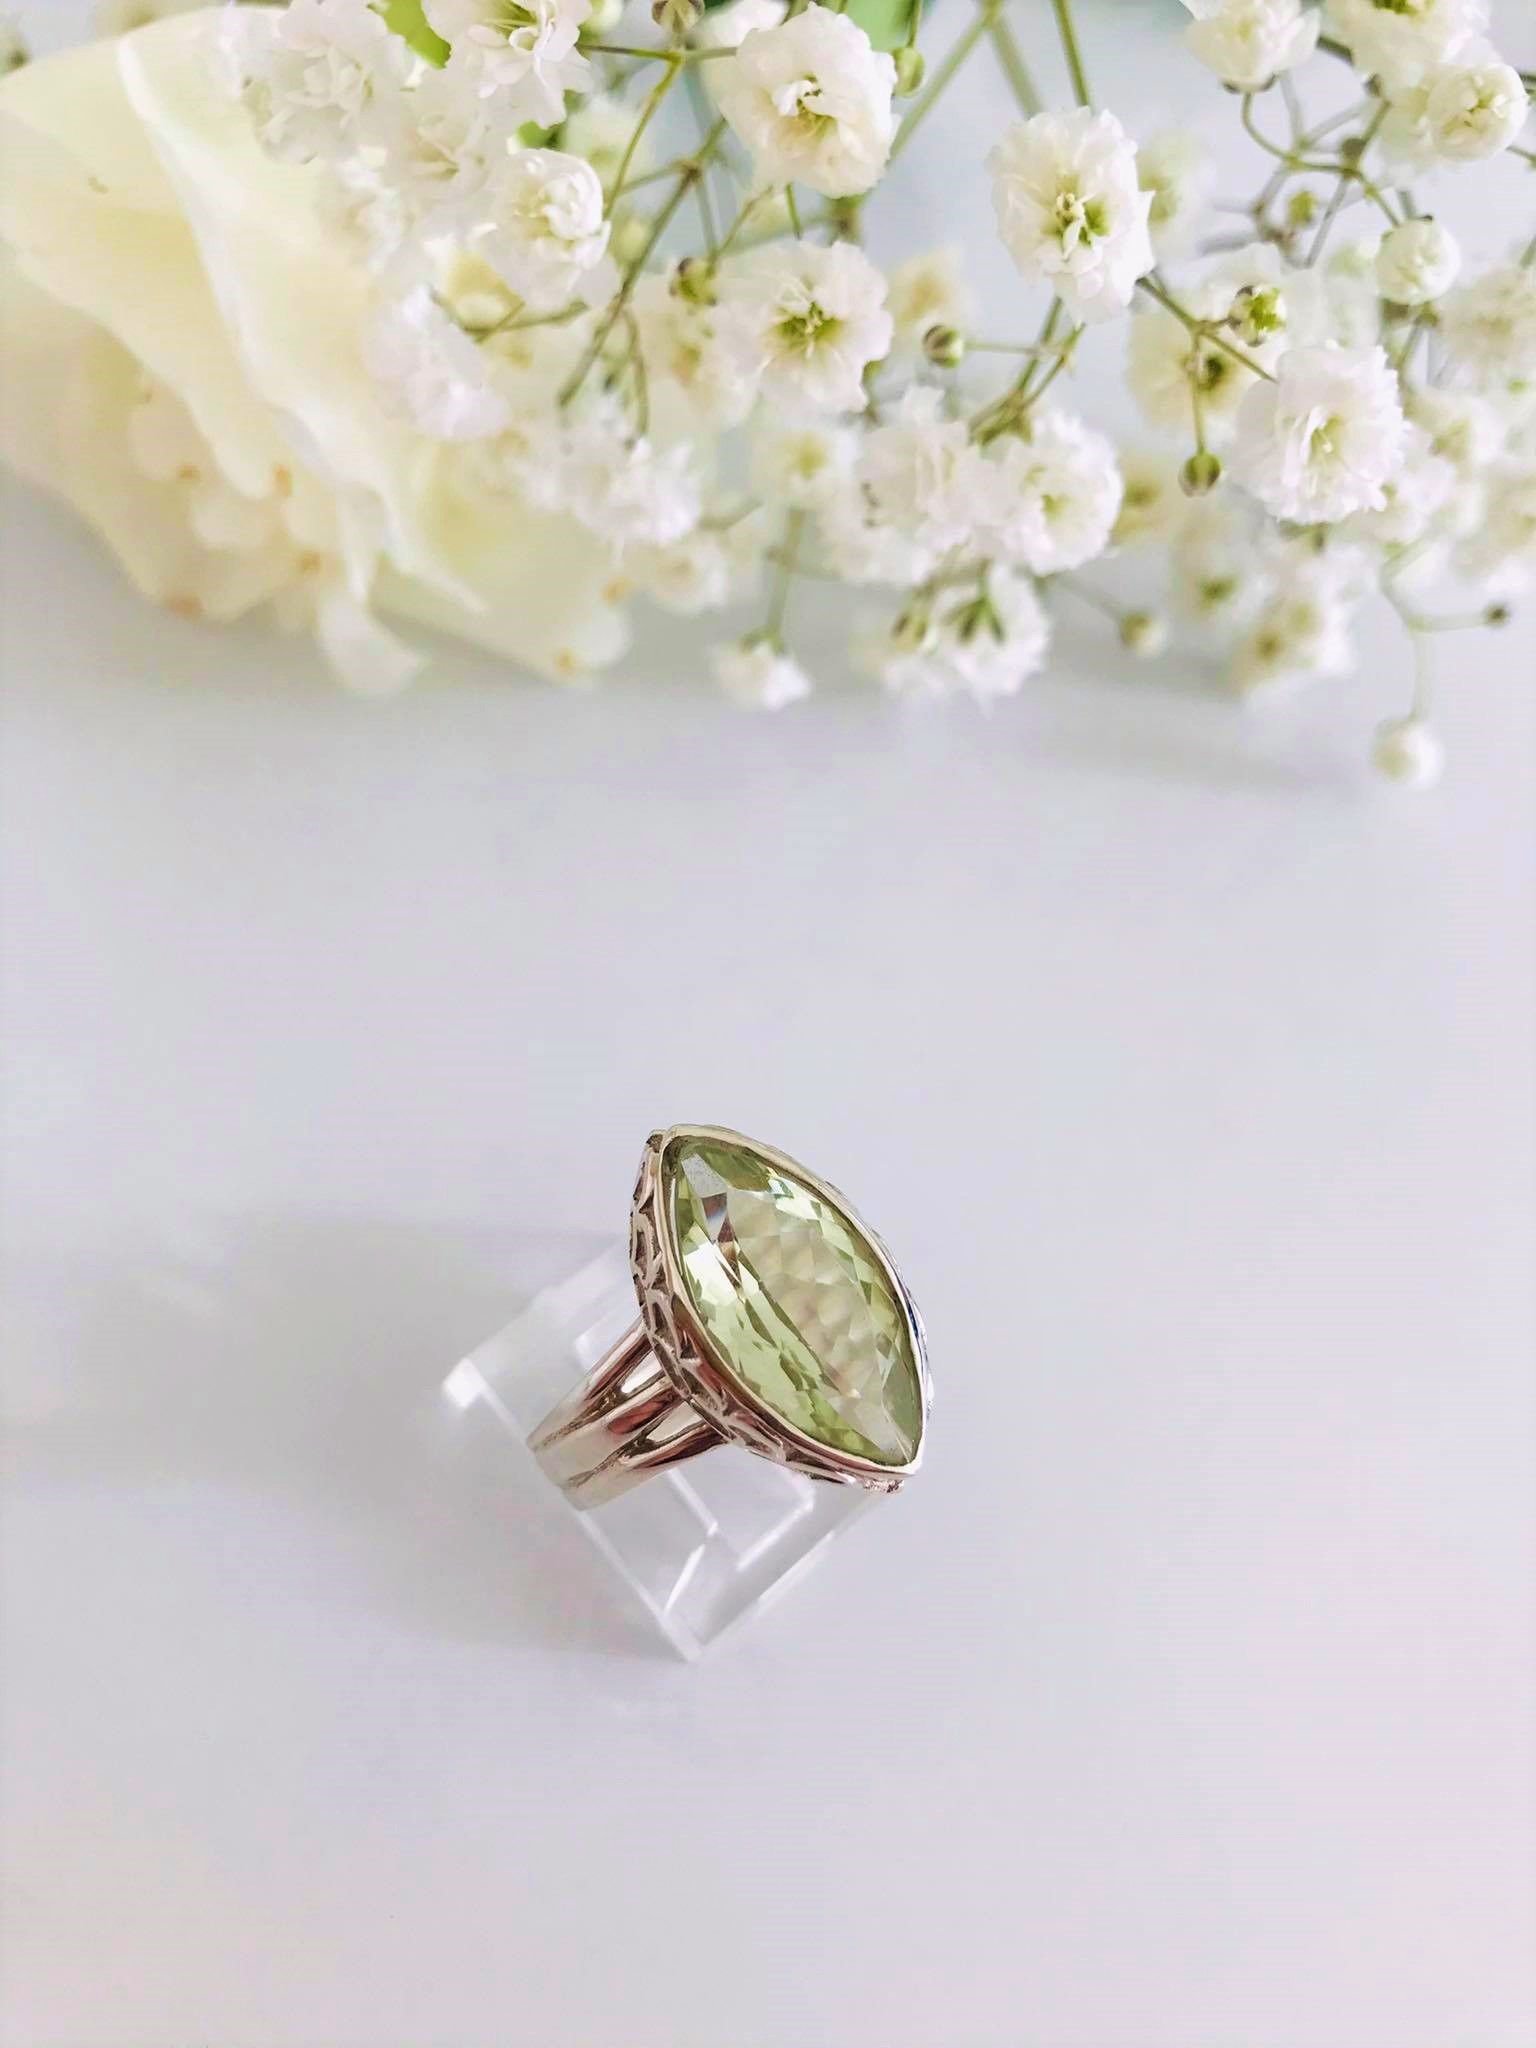 Large Sterling Silver Ring Set with Beautiful Cutting Green Amethyst.  Image